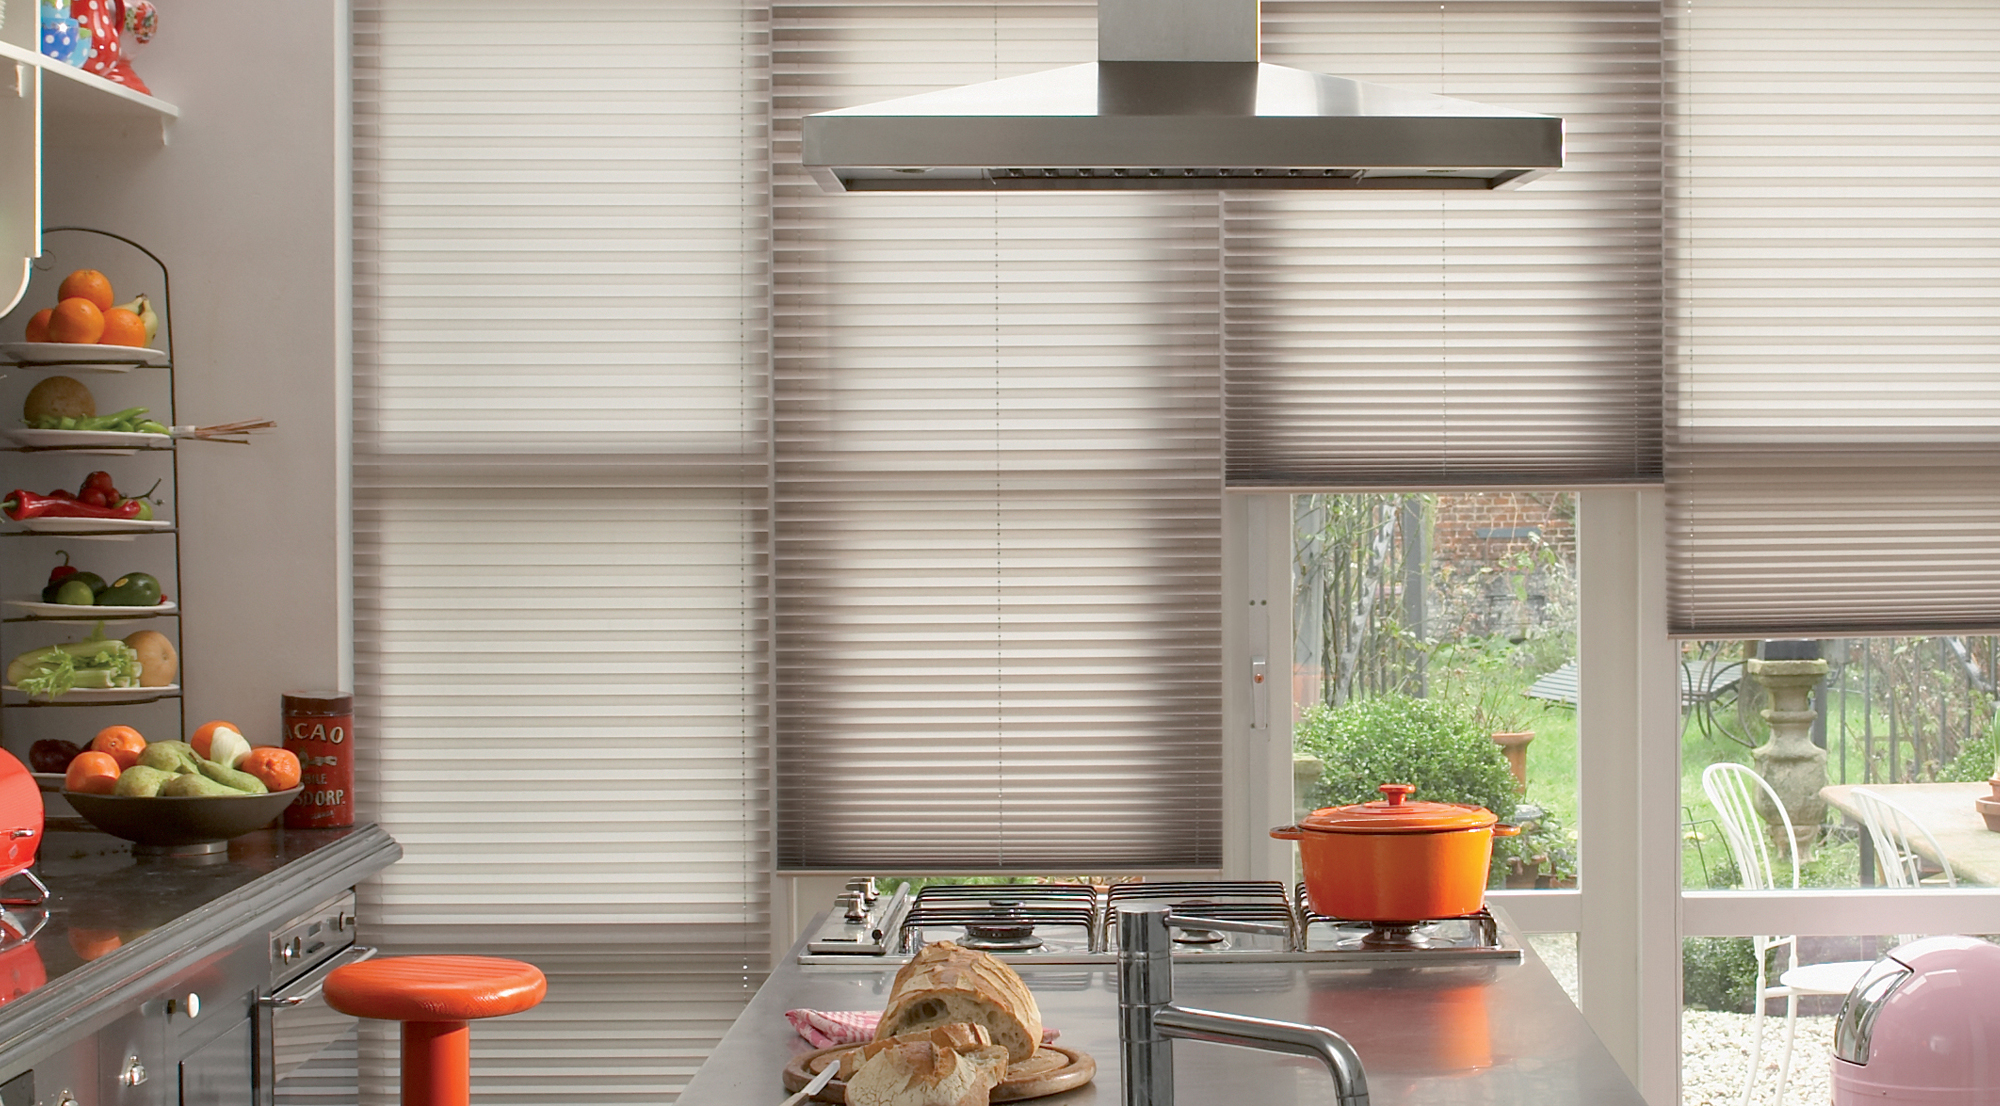 pleated blinds CIEPKSP